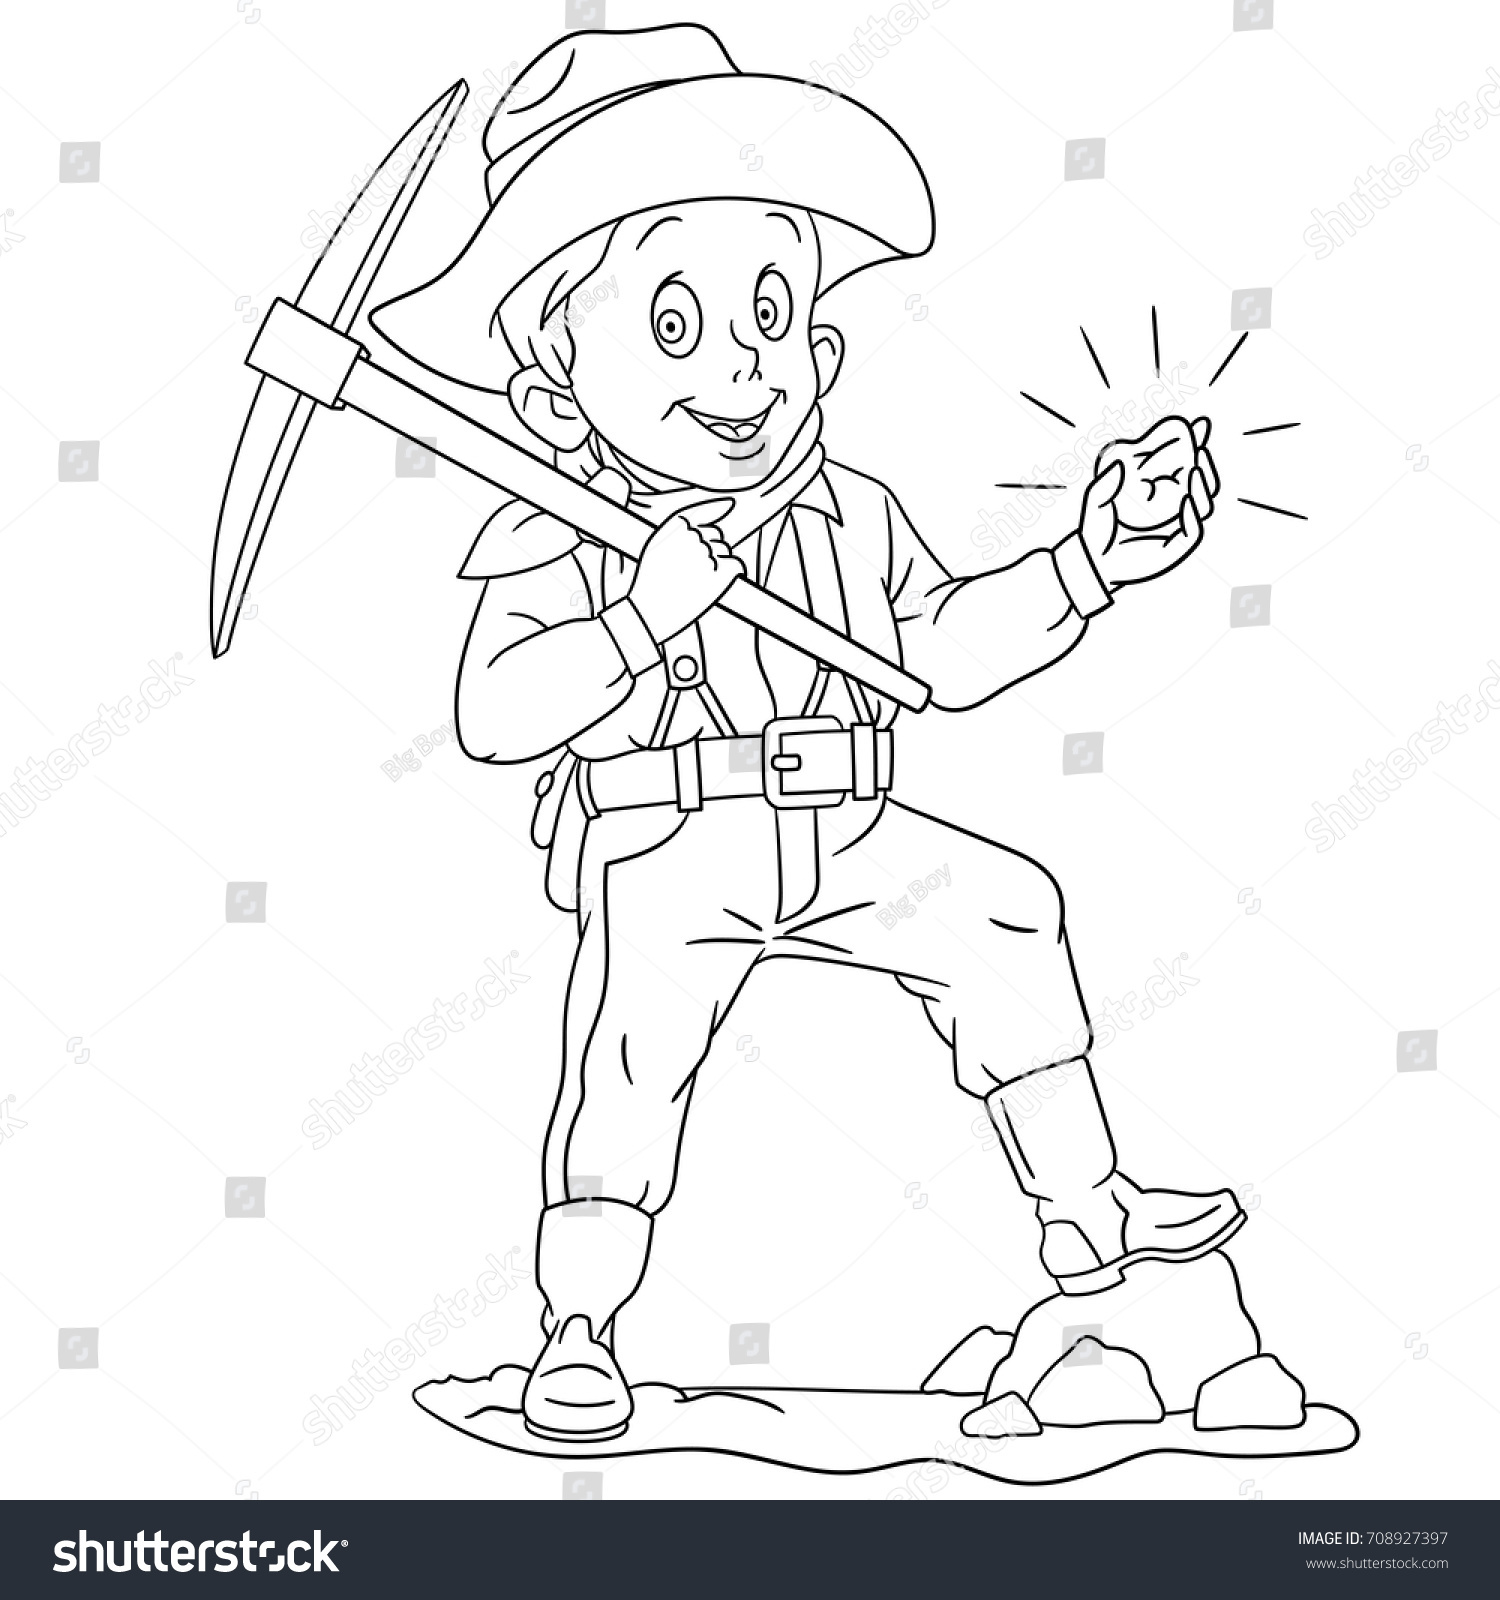 1500x1600 Innovative Mining Coloring Pages Gold Rush For Kids And Adults